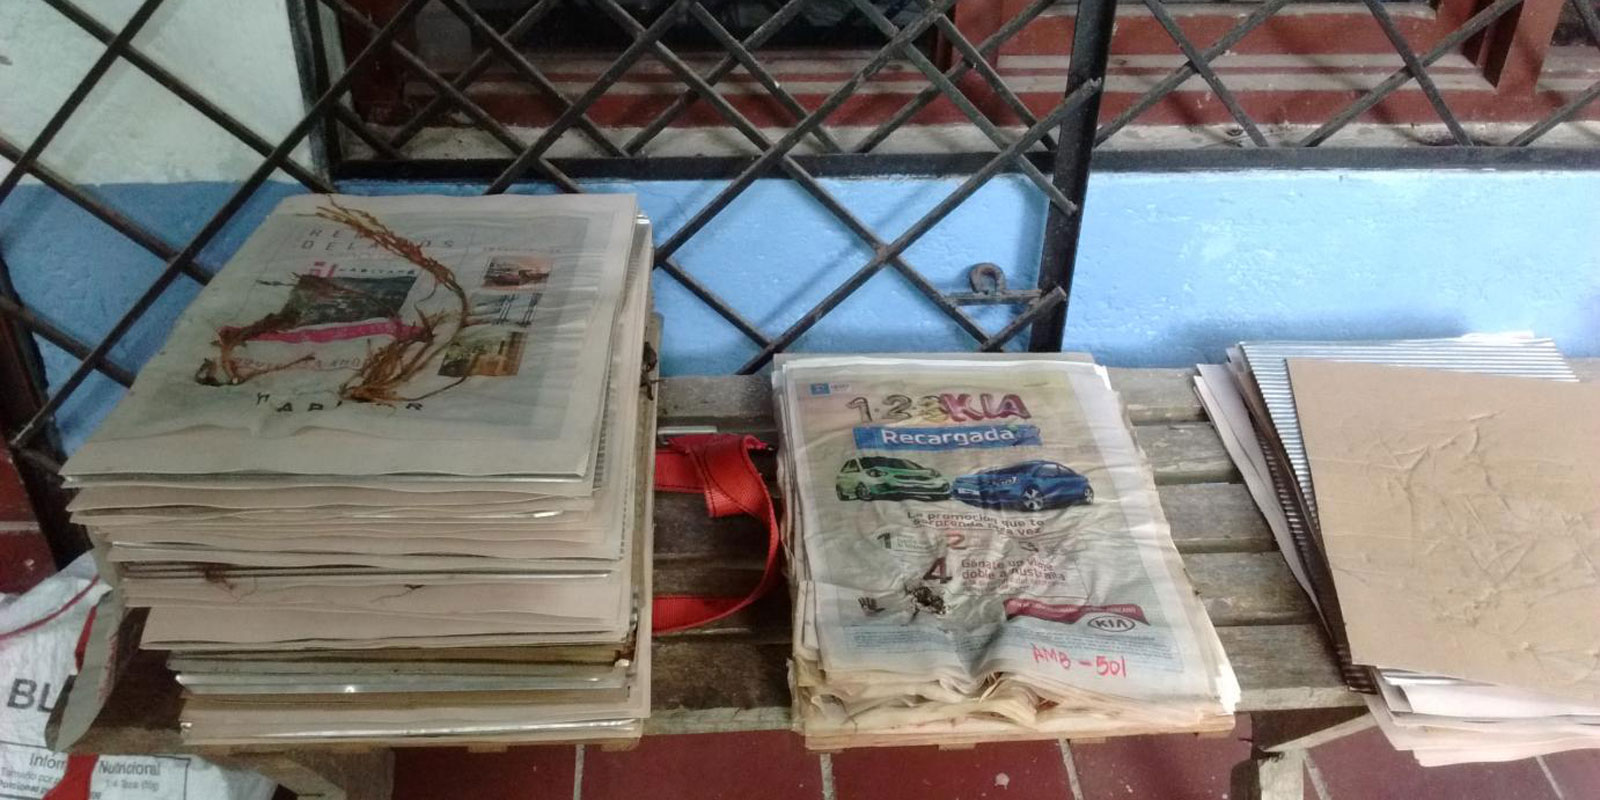 Two piles of newspaper with pressed plants in between the pages